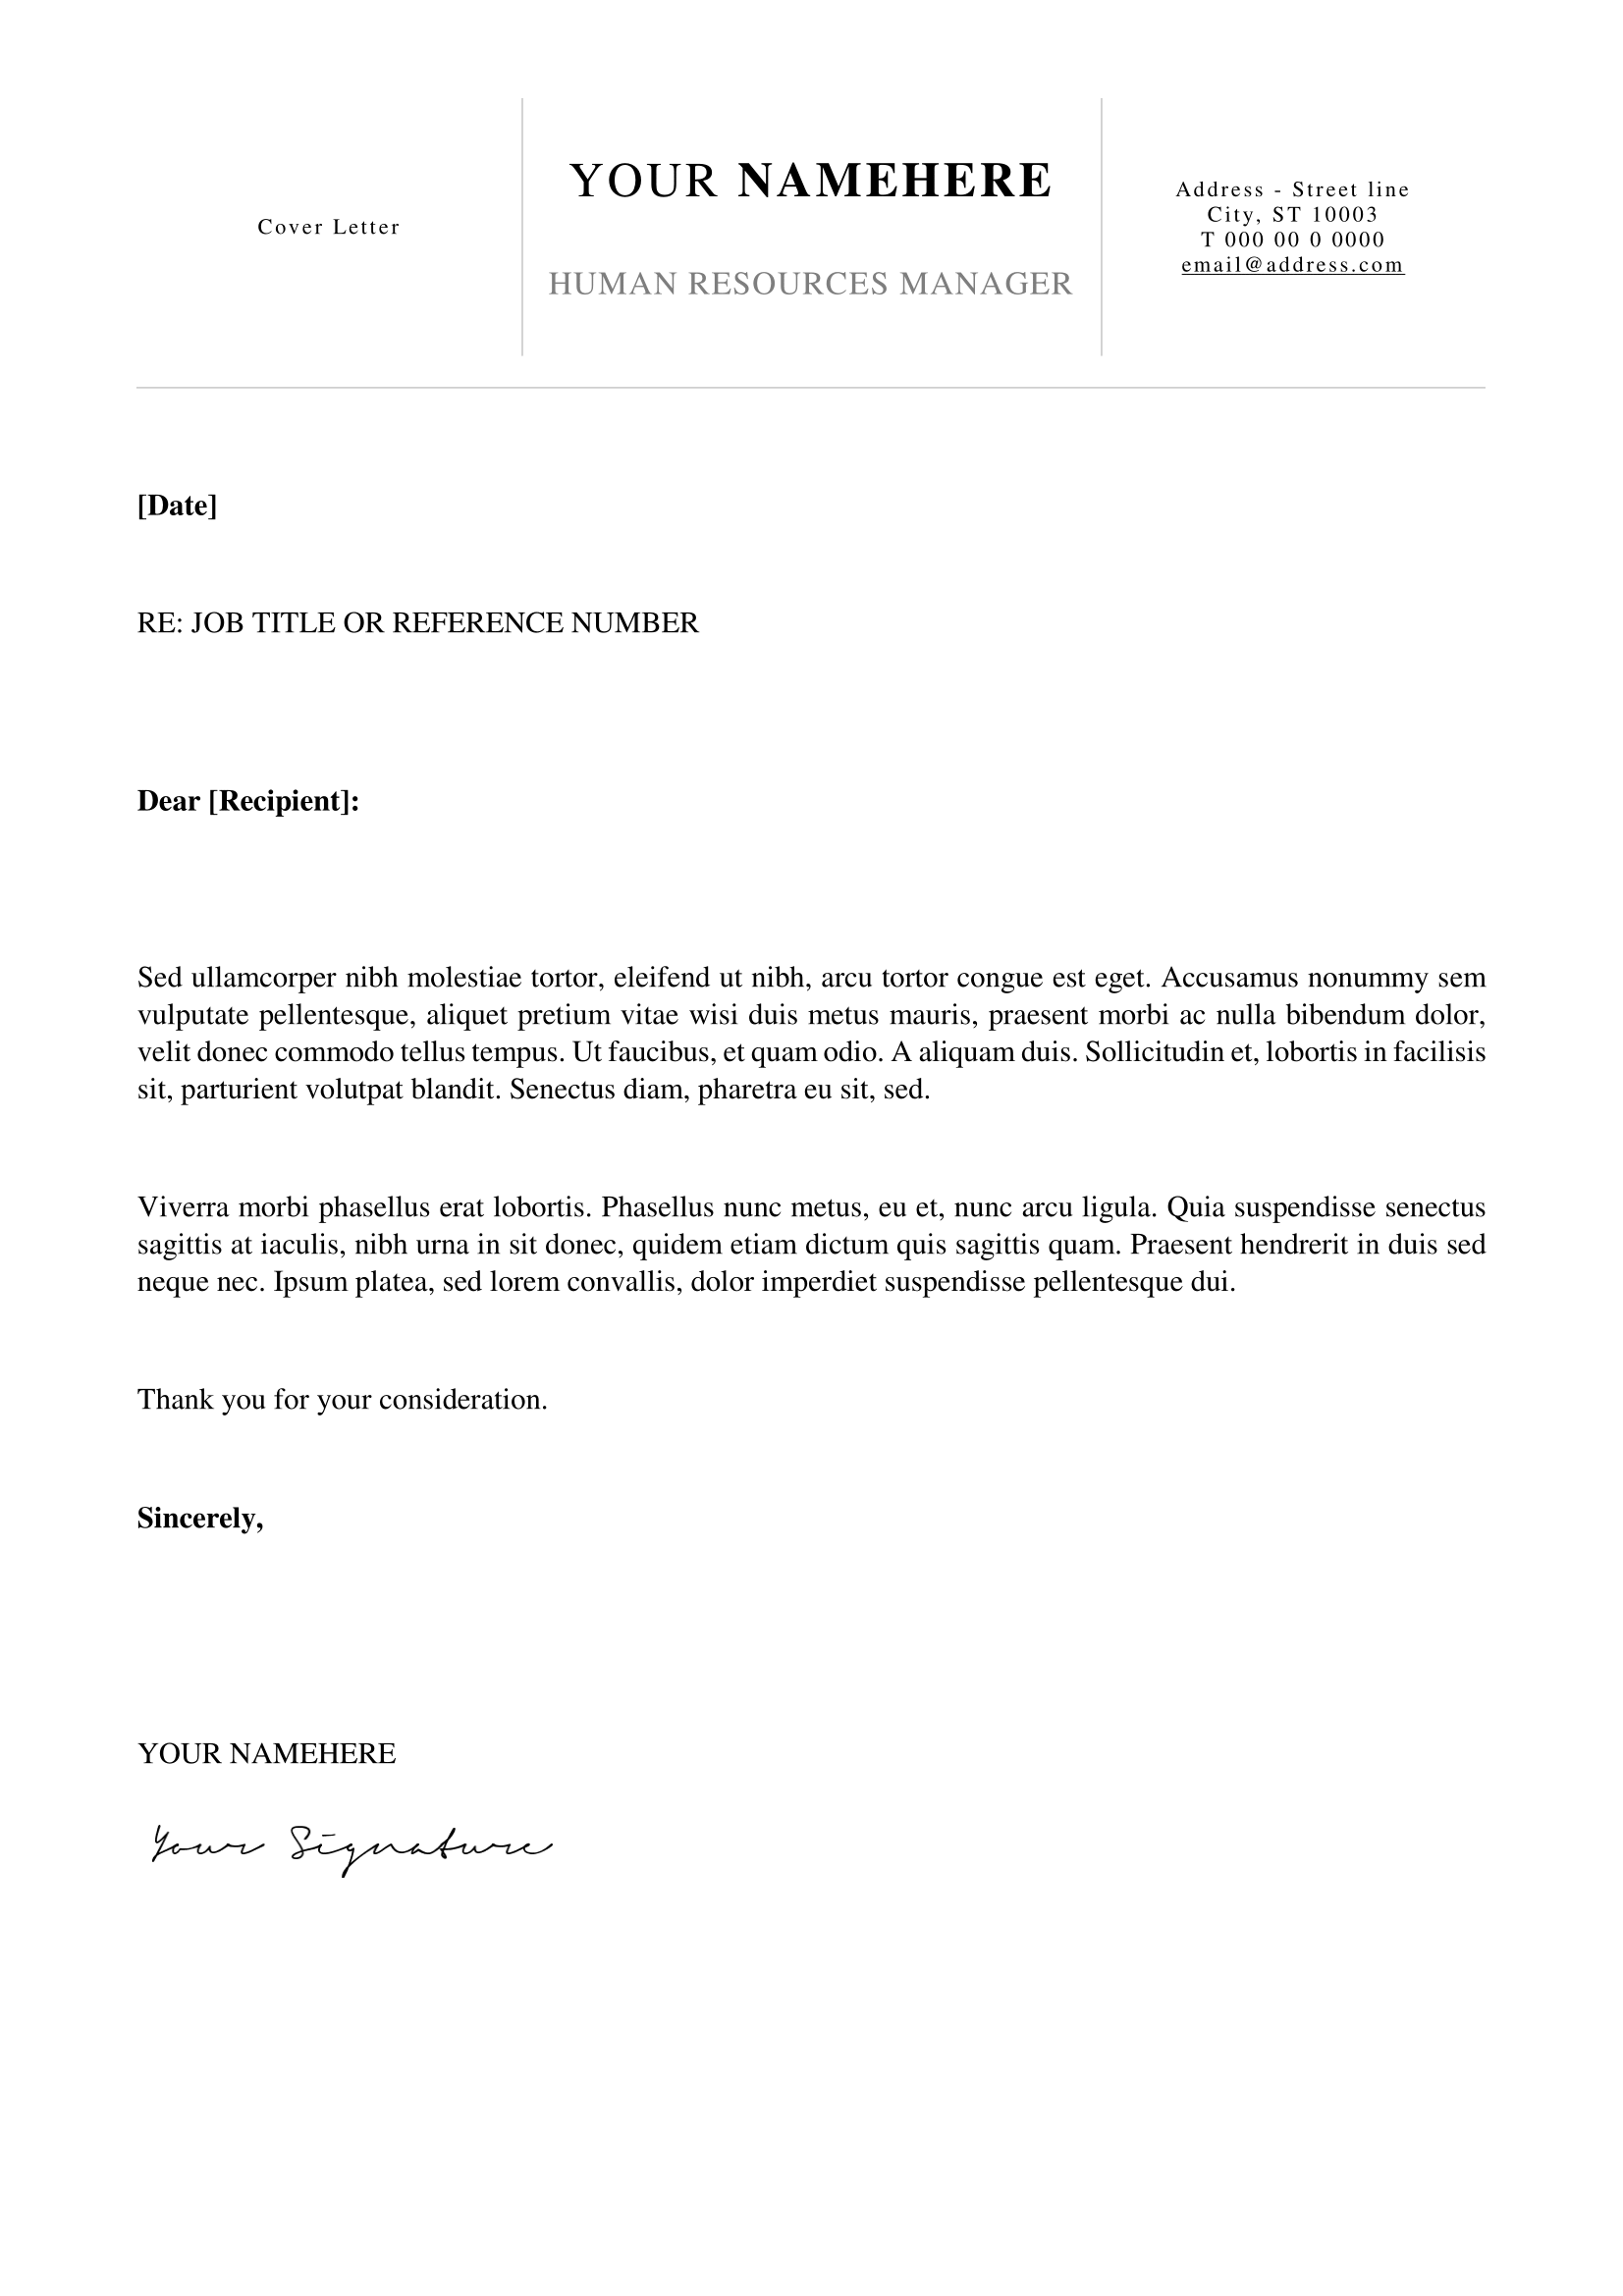 kallio - free simple cover letter template for word (docx) | basic